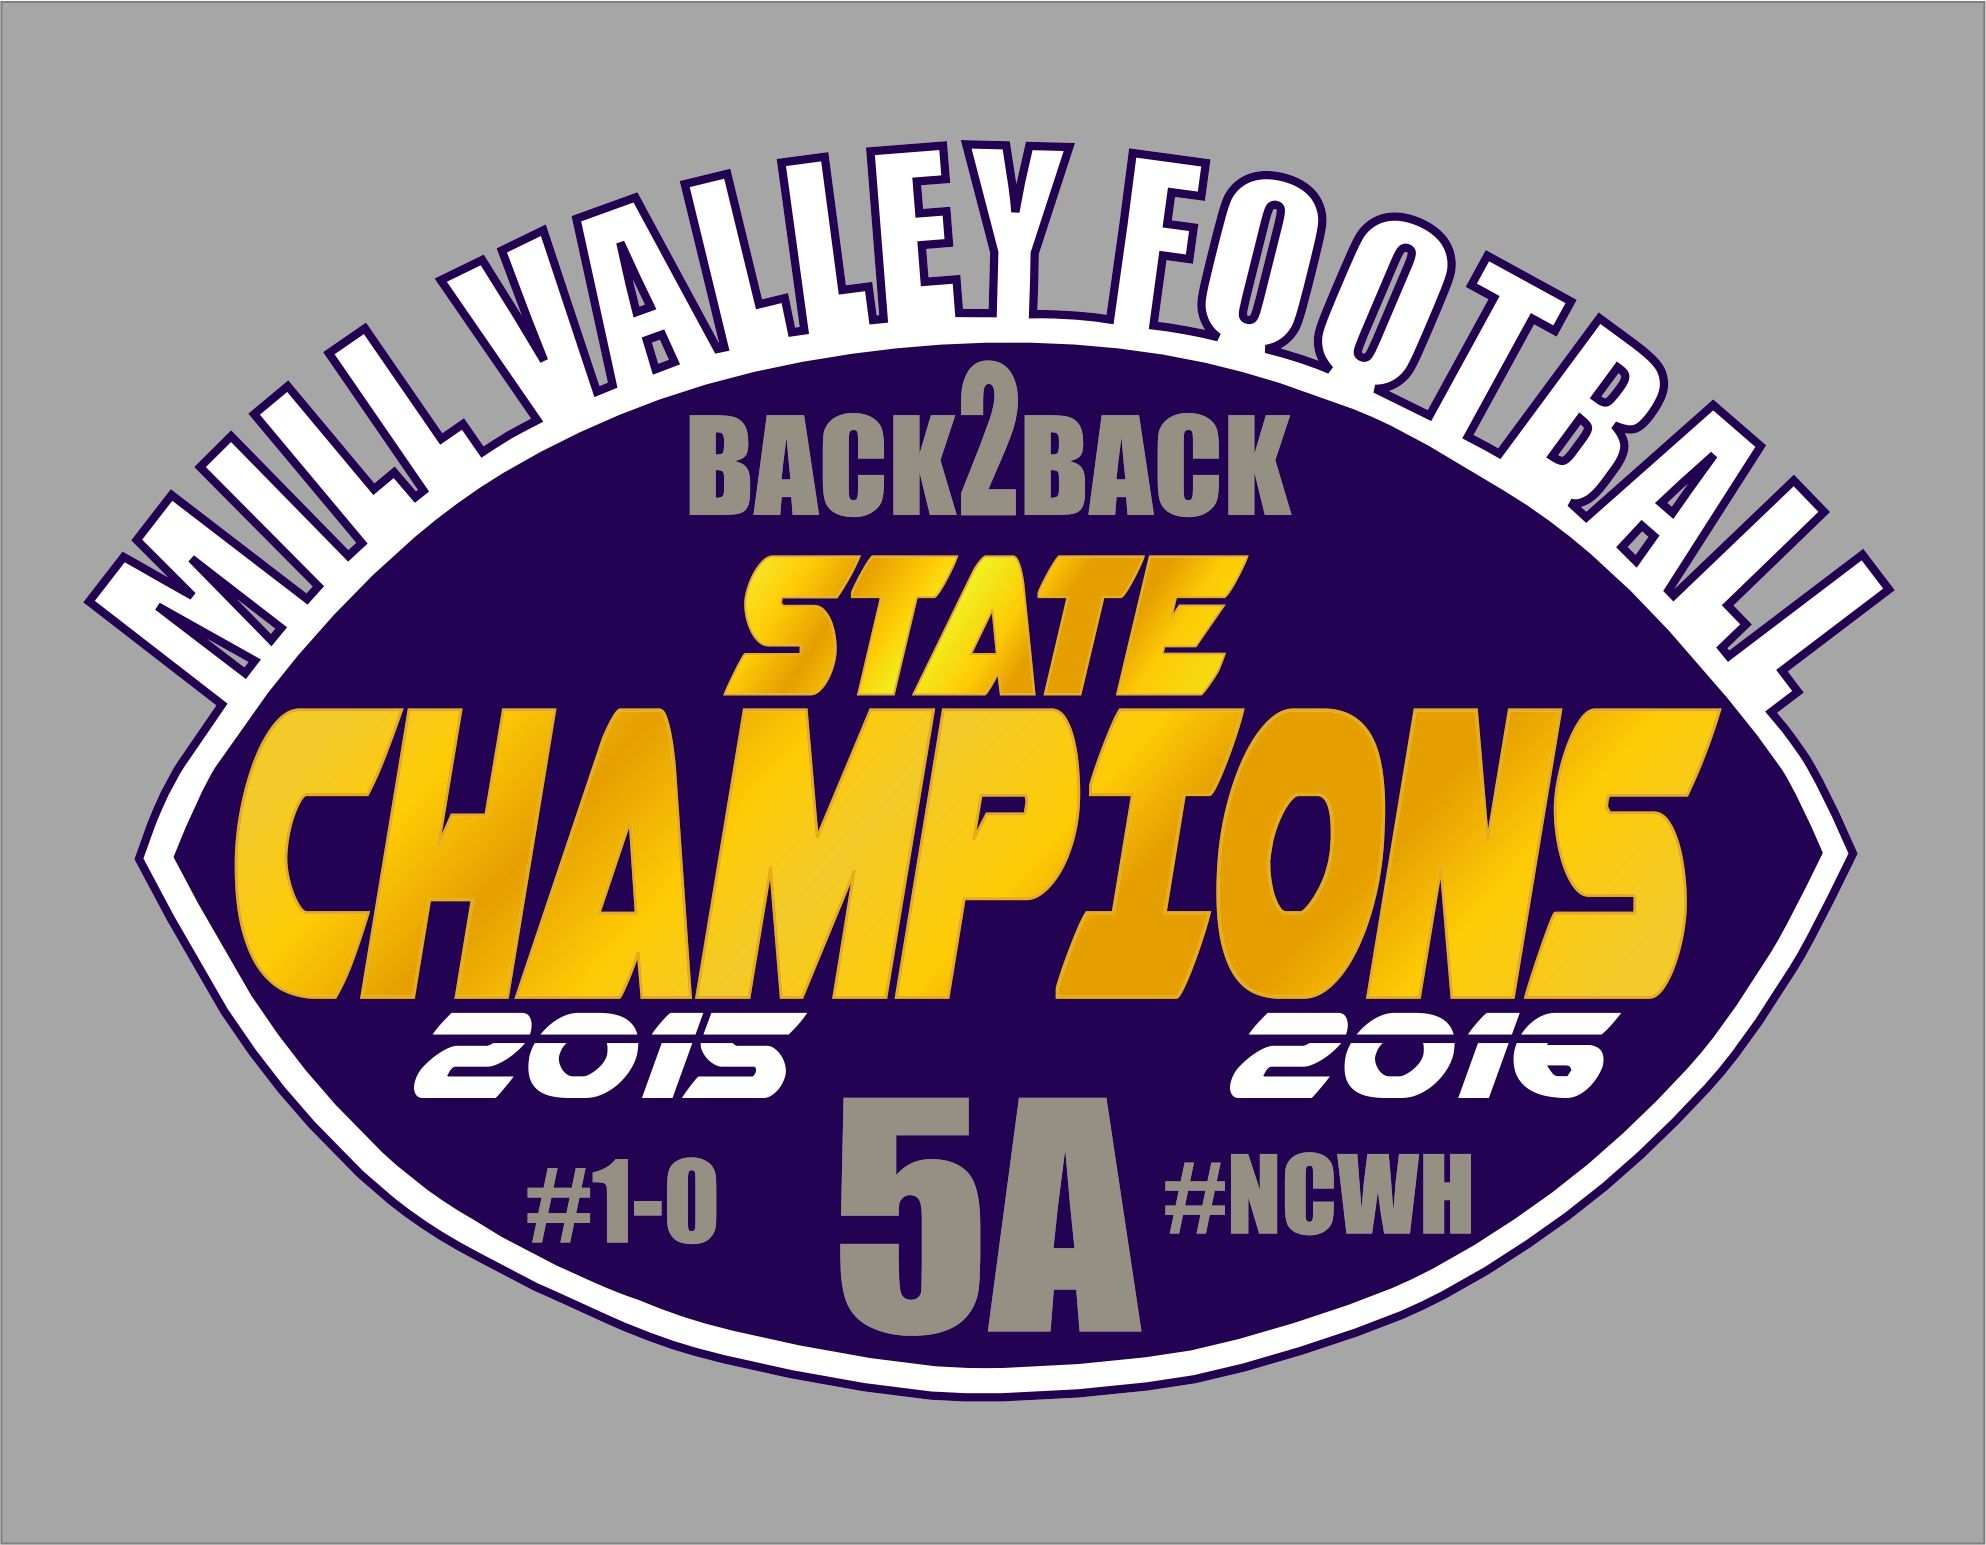 Mv state champs car decal mill valley football back to back state champs